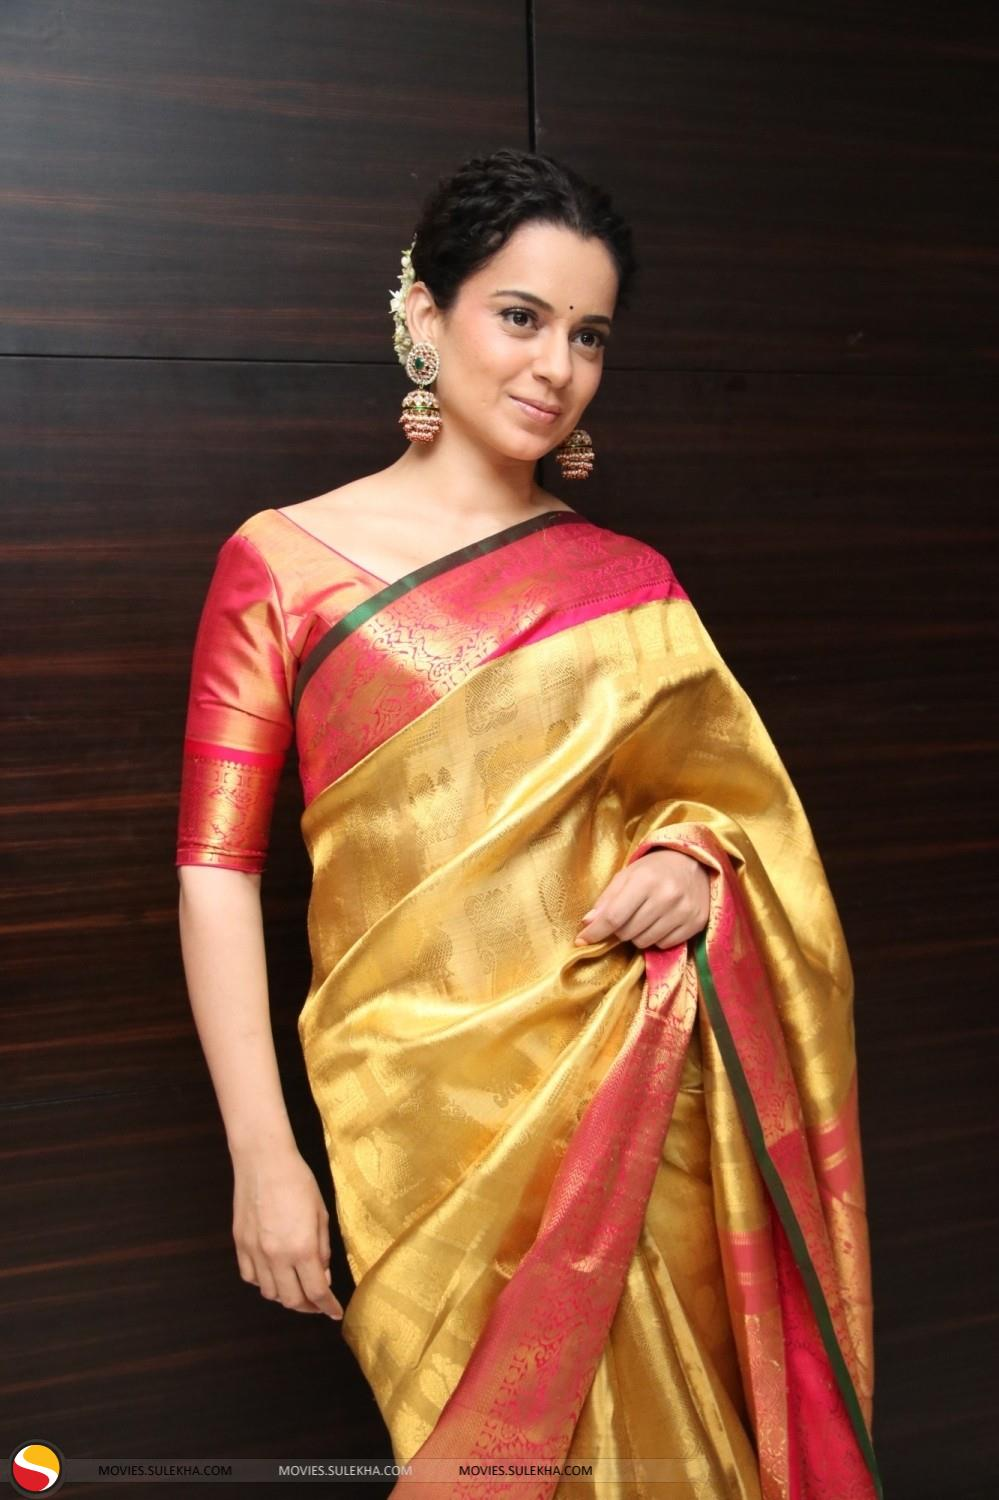 Manikarnika The Queen Of Jhansi Movie Trailer Launch Event Photo